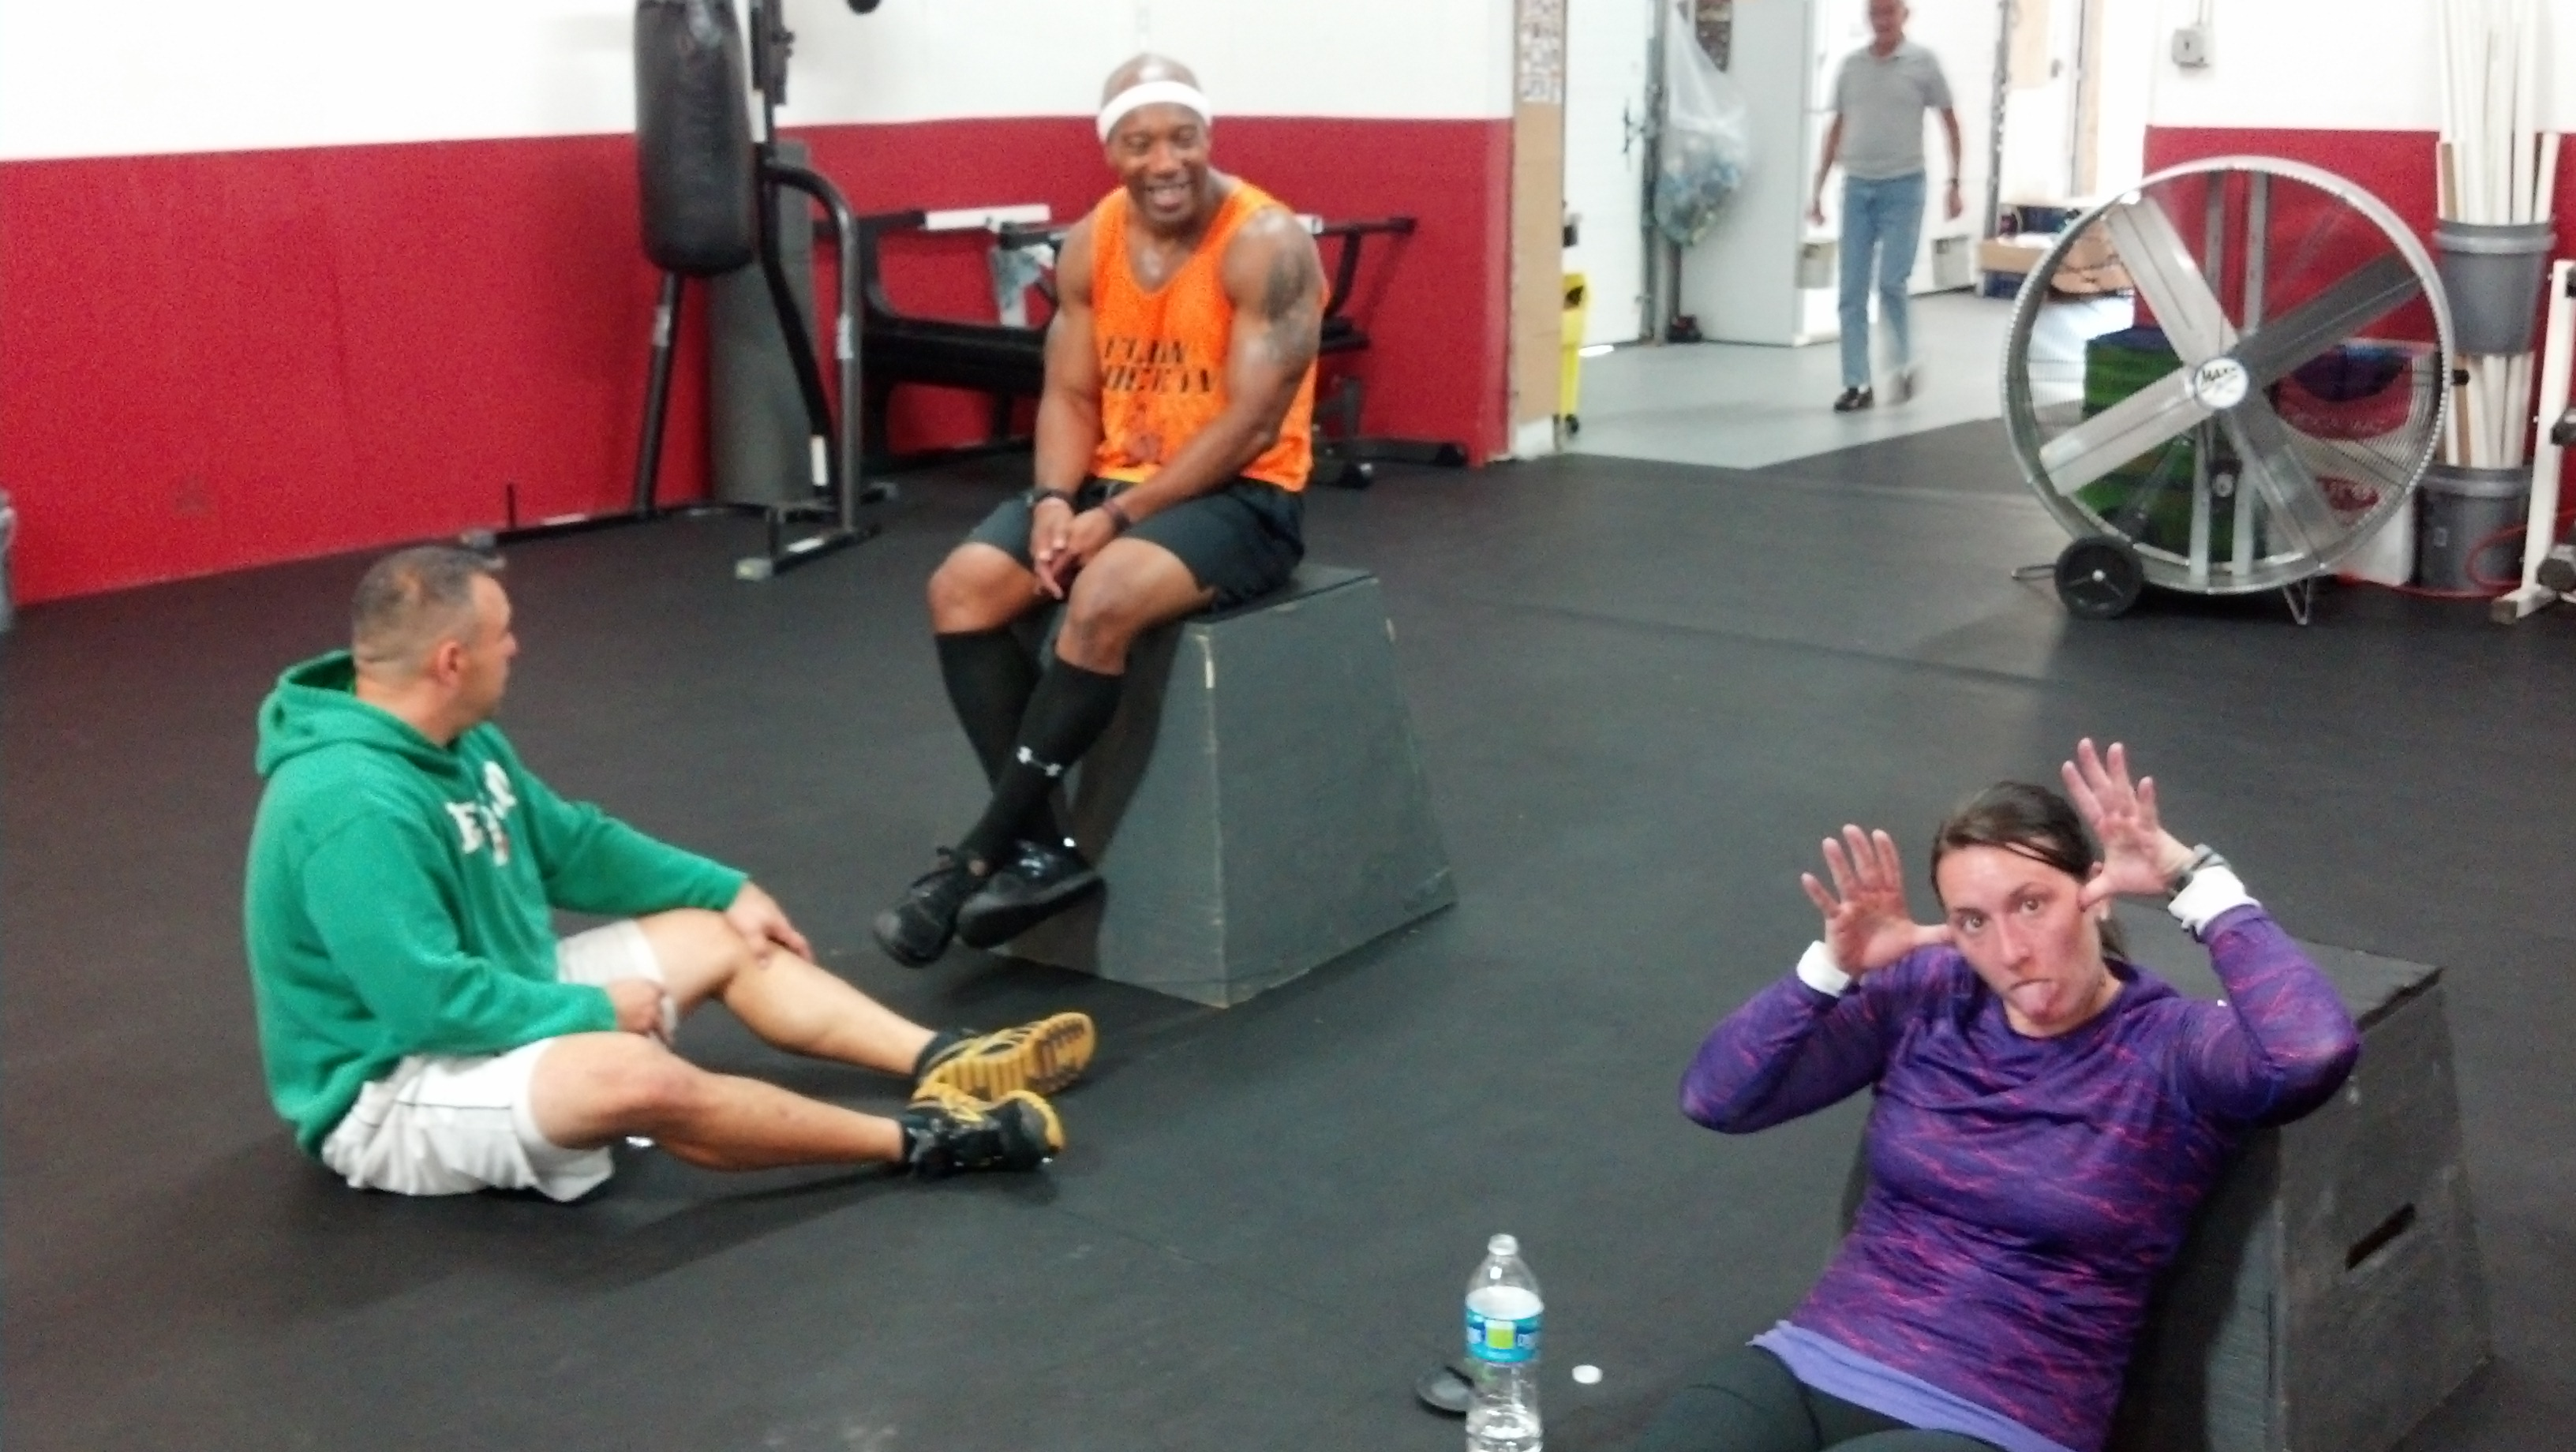 Tuesday, March 26 WOD